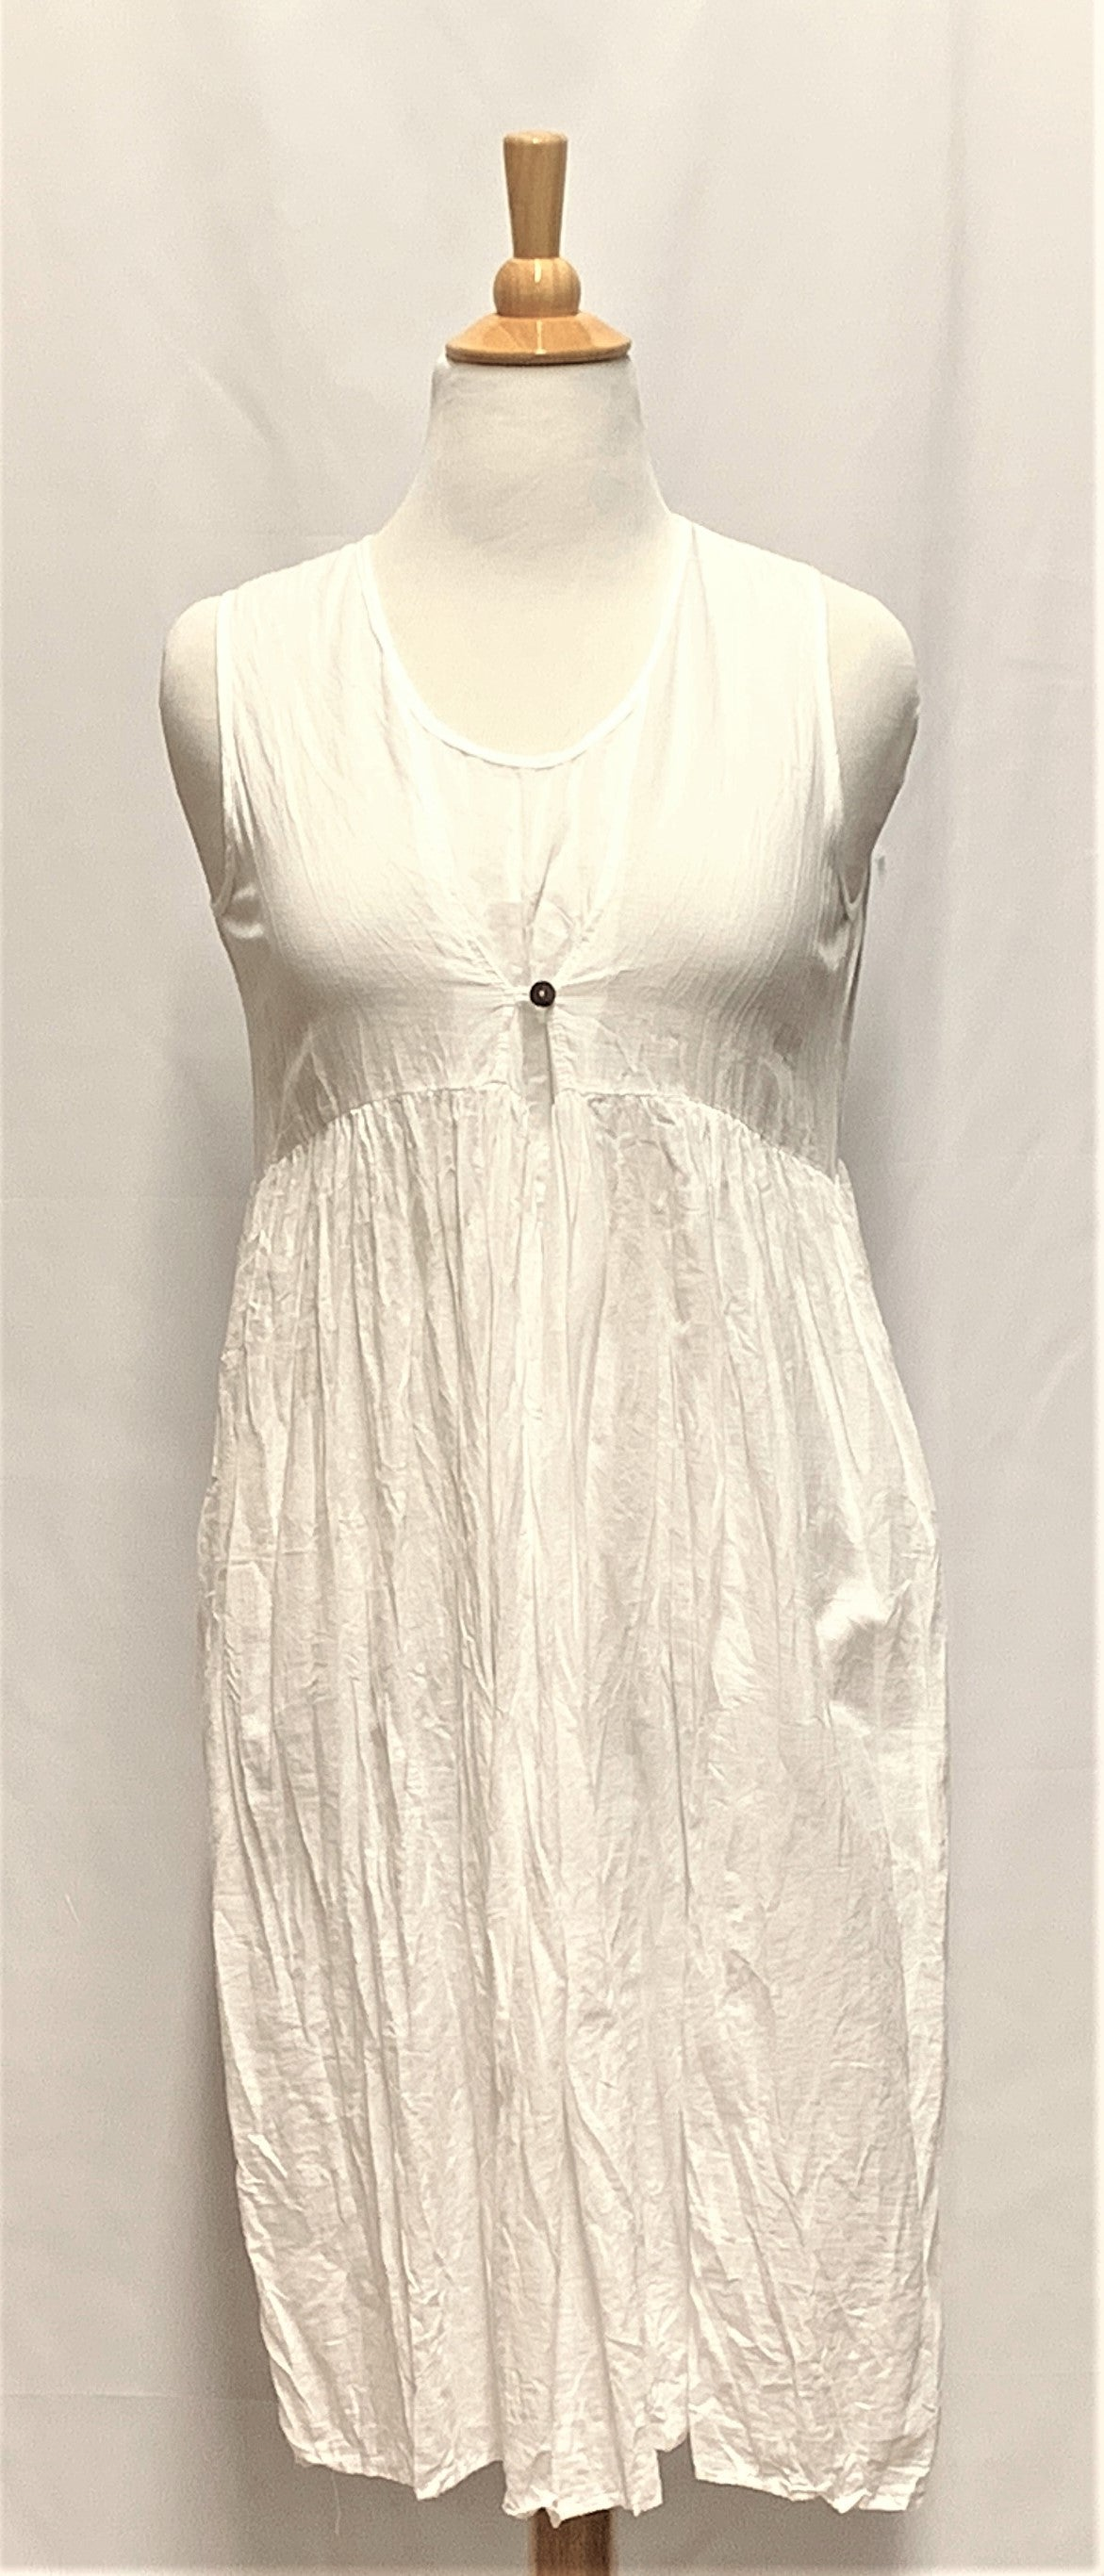 Cotton Short Summer Dress